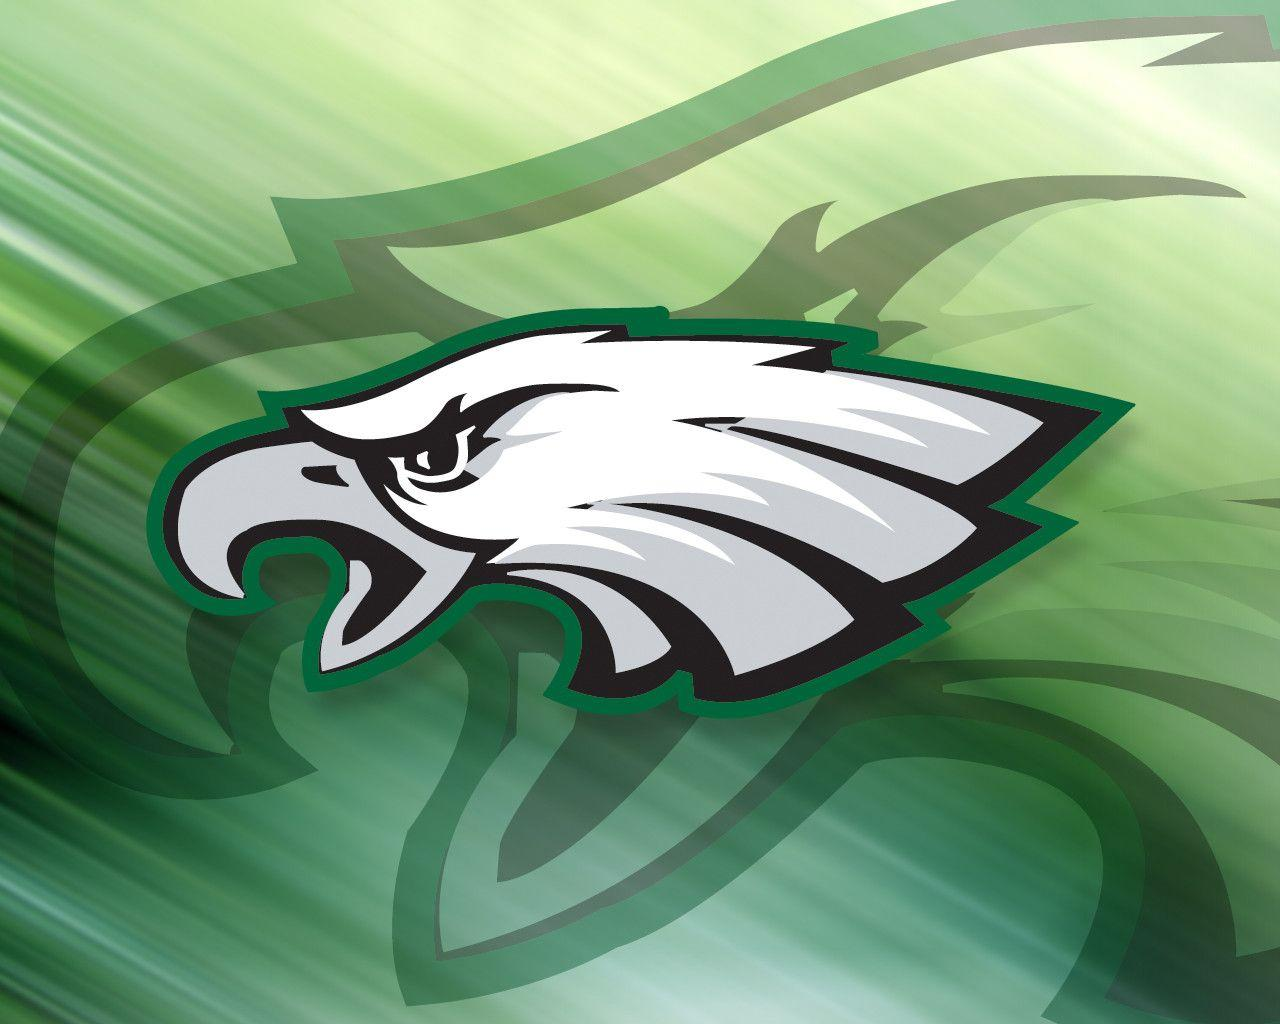 Fascinating Philadelphia Eagles Hd Wallpapers Pictures 1280x1024PX